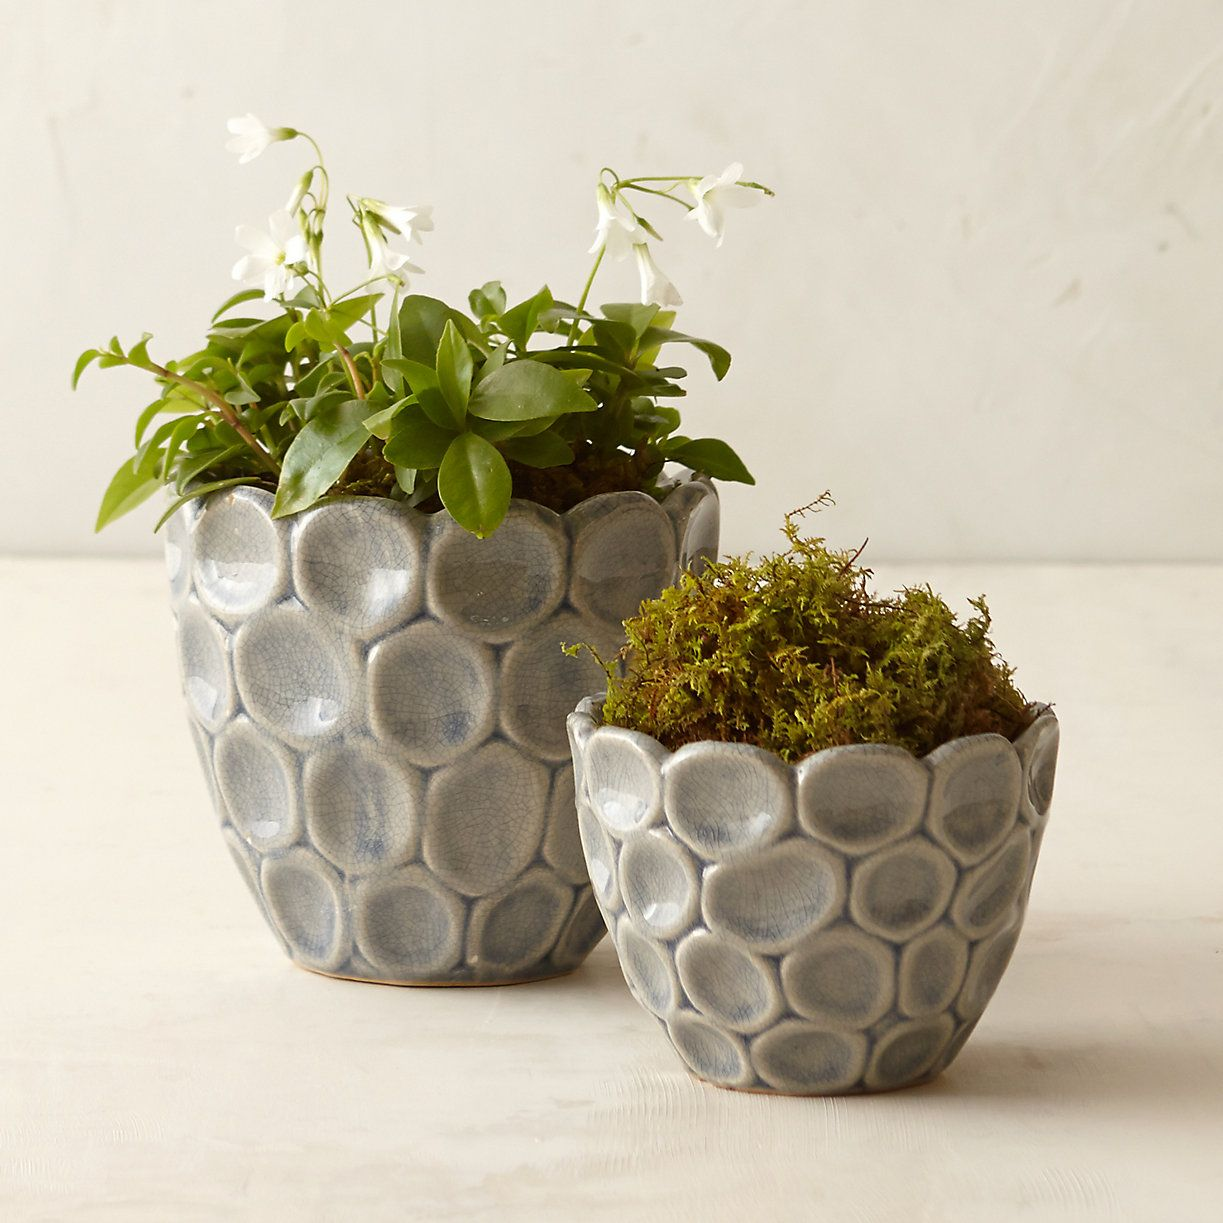 Ceramic Flower Planters Layered Circles Pot Contemporary Patterns And Pottery